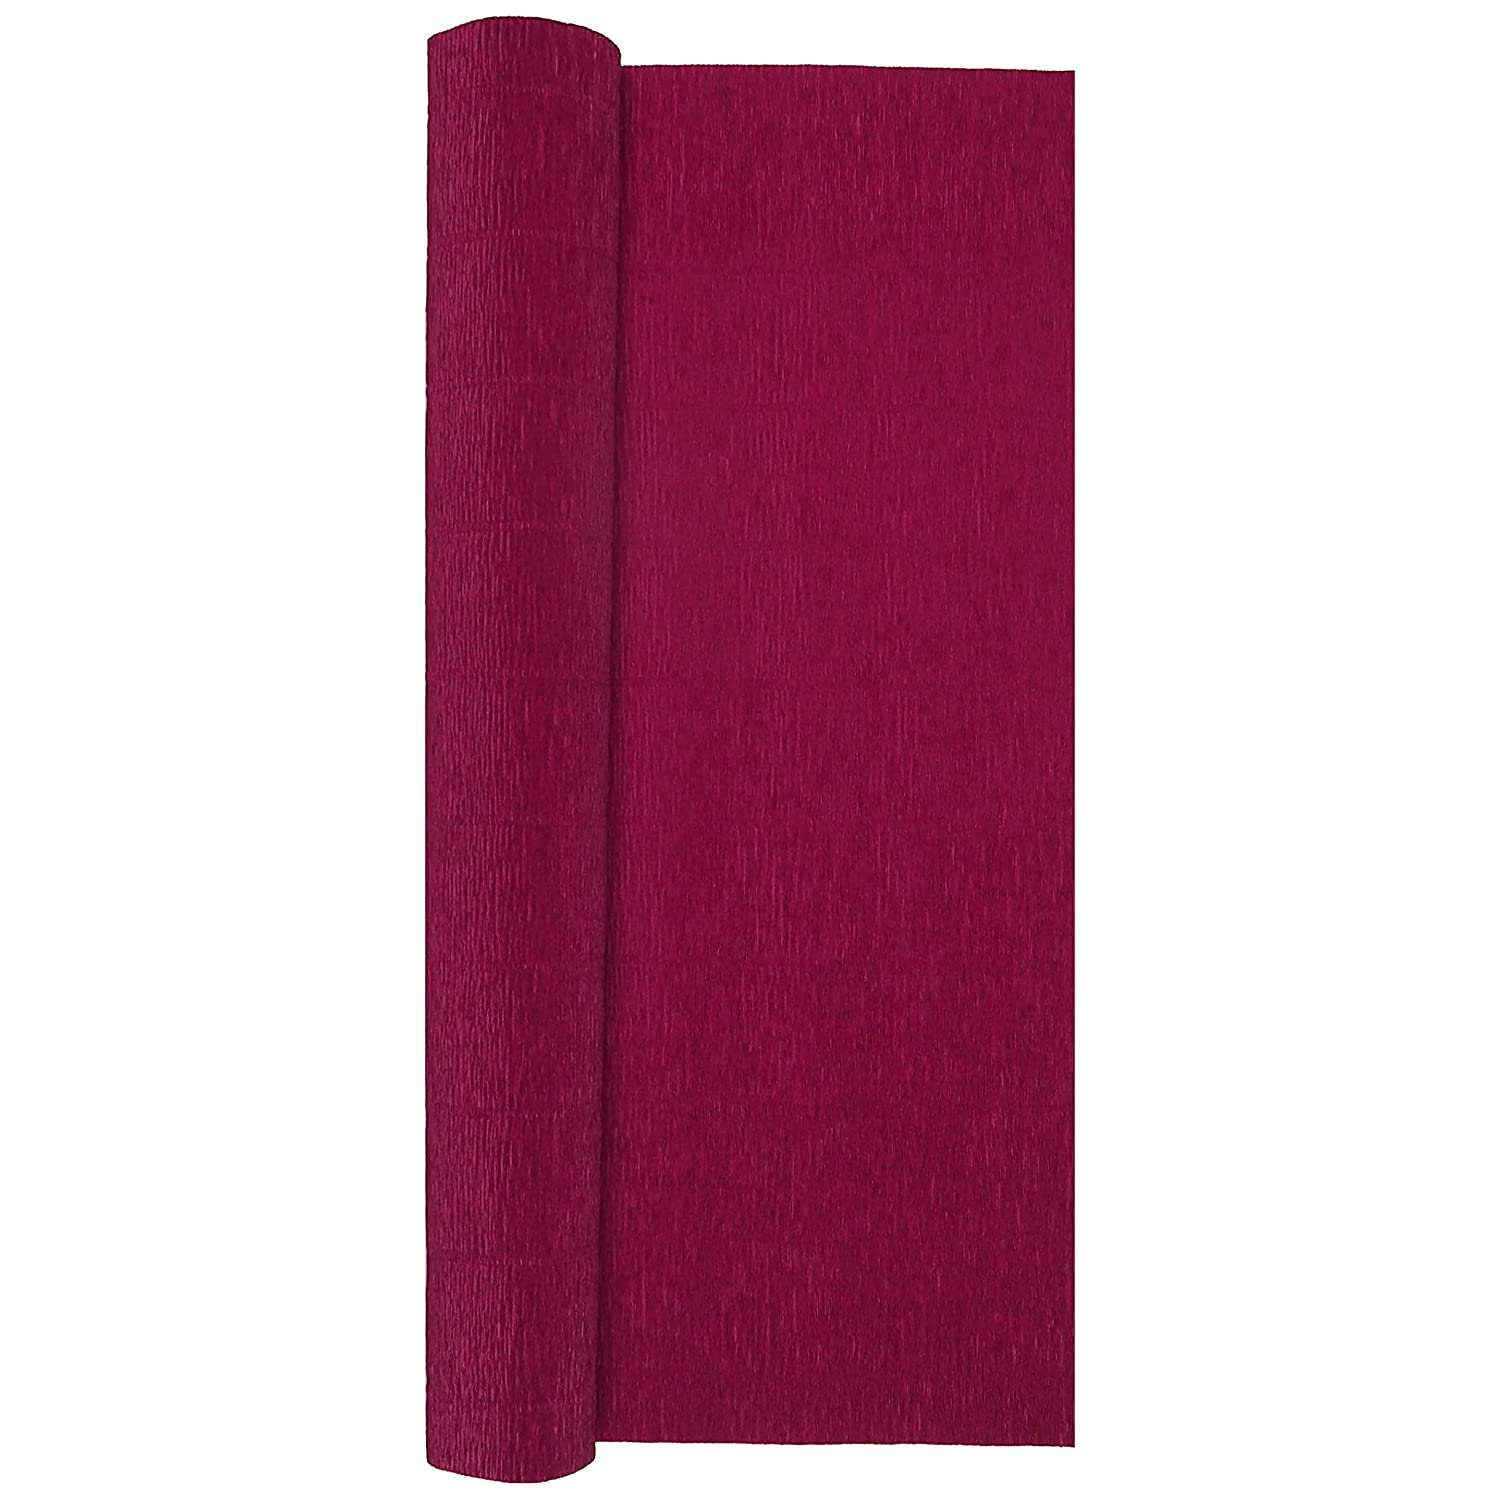 Heavy Italian 180 g Cardinal Red 13.3 sqft Crepe Paper Roll